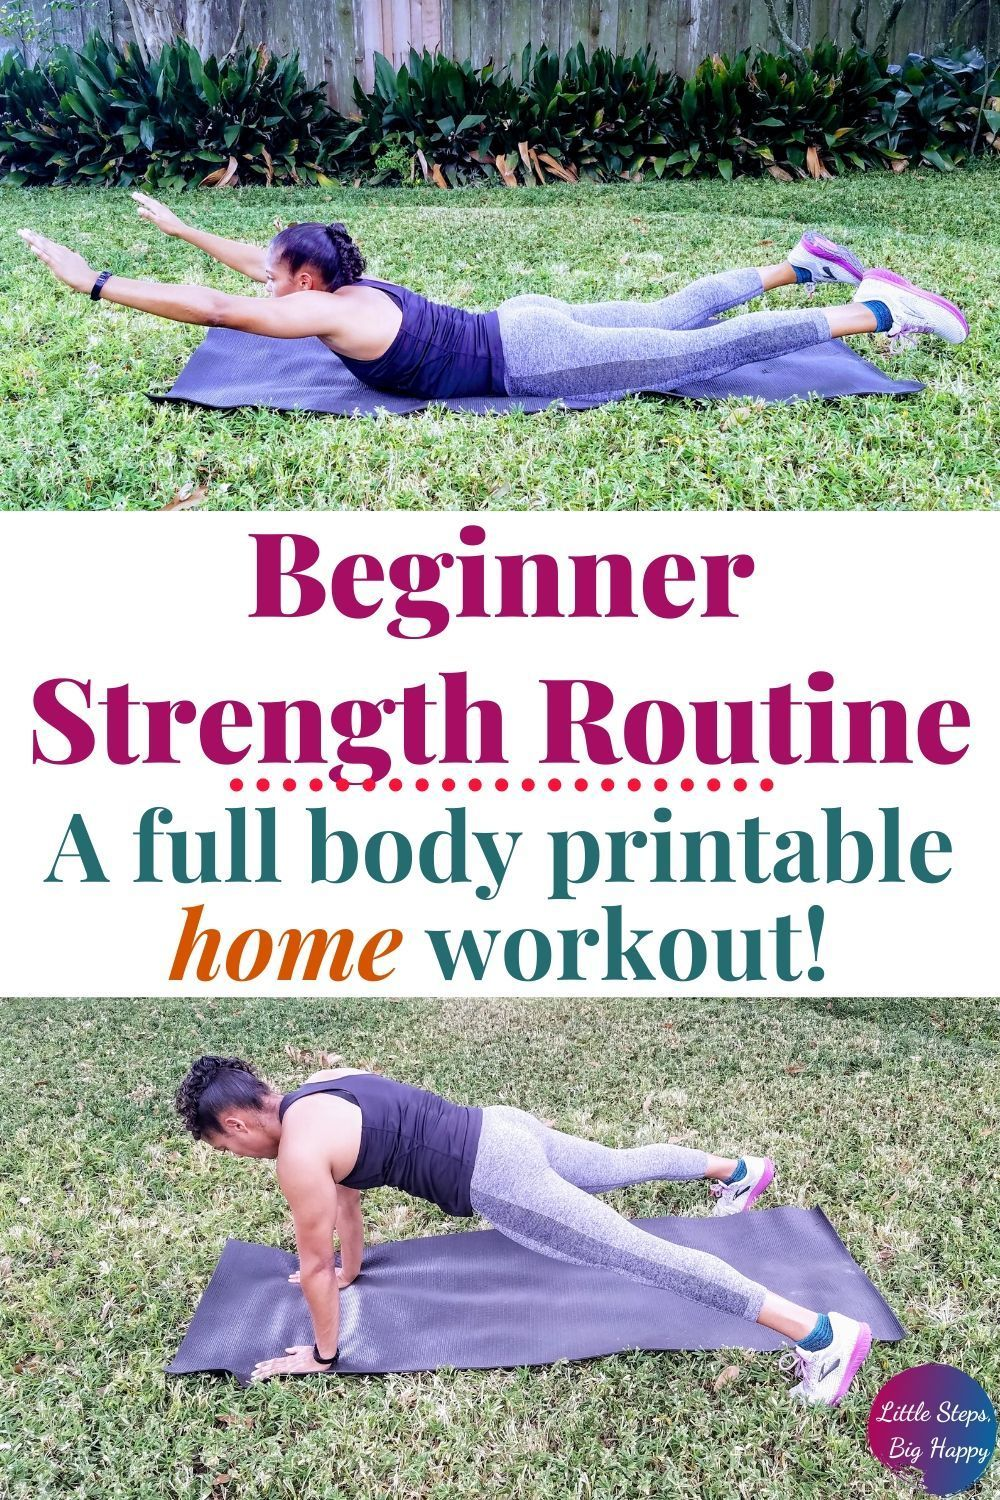 Full Body Beginner Strength Training Workout to Do at Home